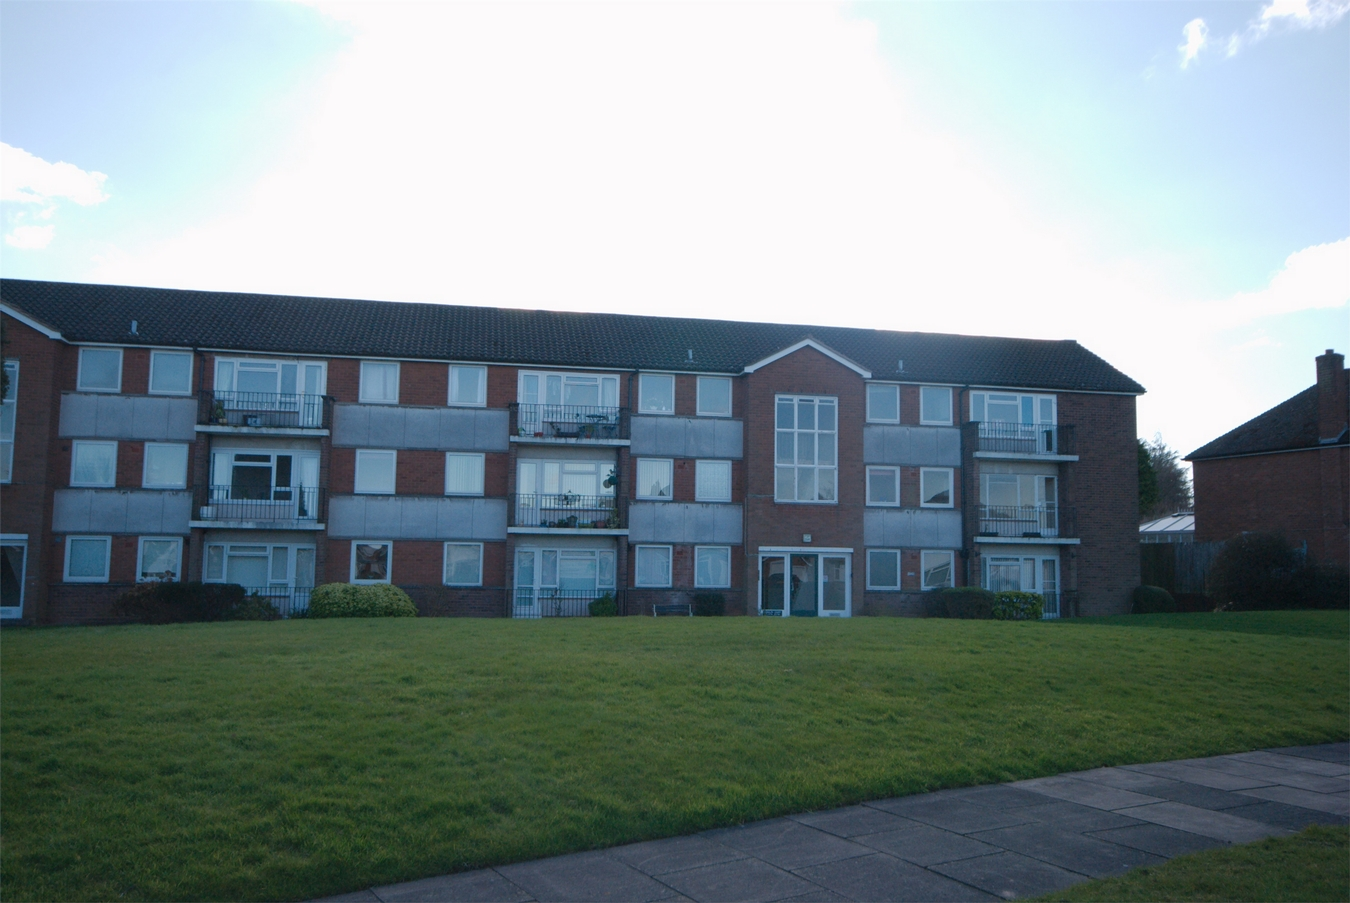 1 bedroom flat for sale in sutton coldfield for How much is a bathroom worth on an appraisal